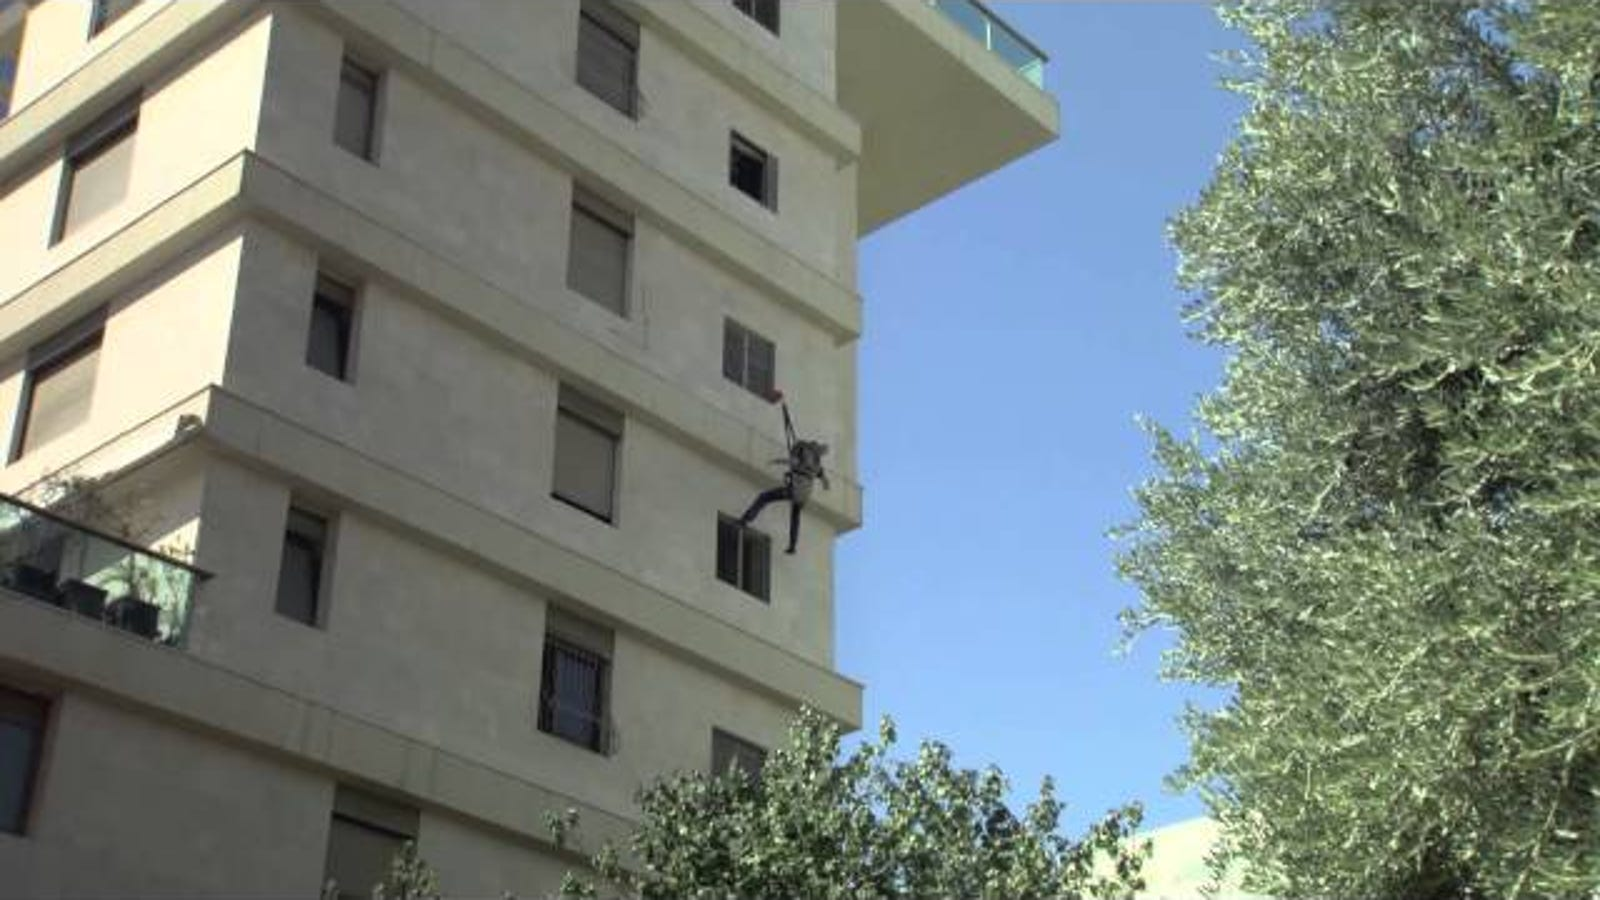 Jump Safely from Burning Buildings Wearing This Window Escape Pack